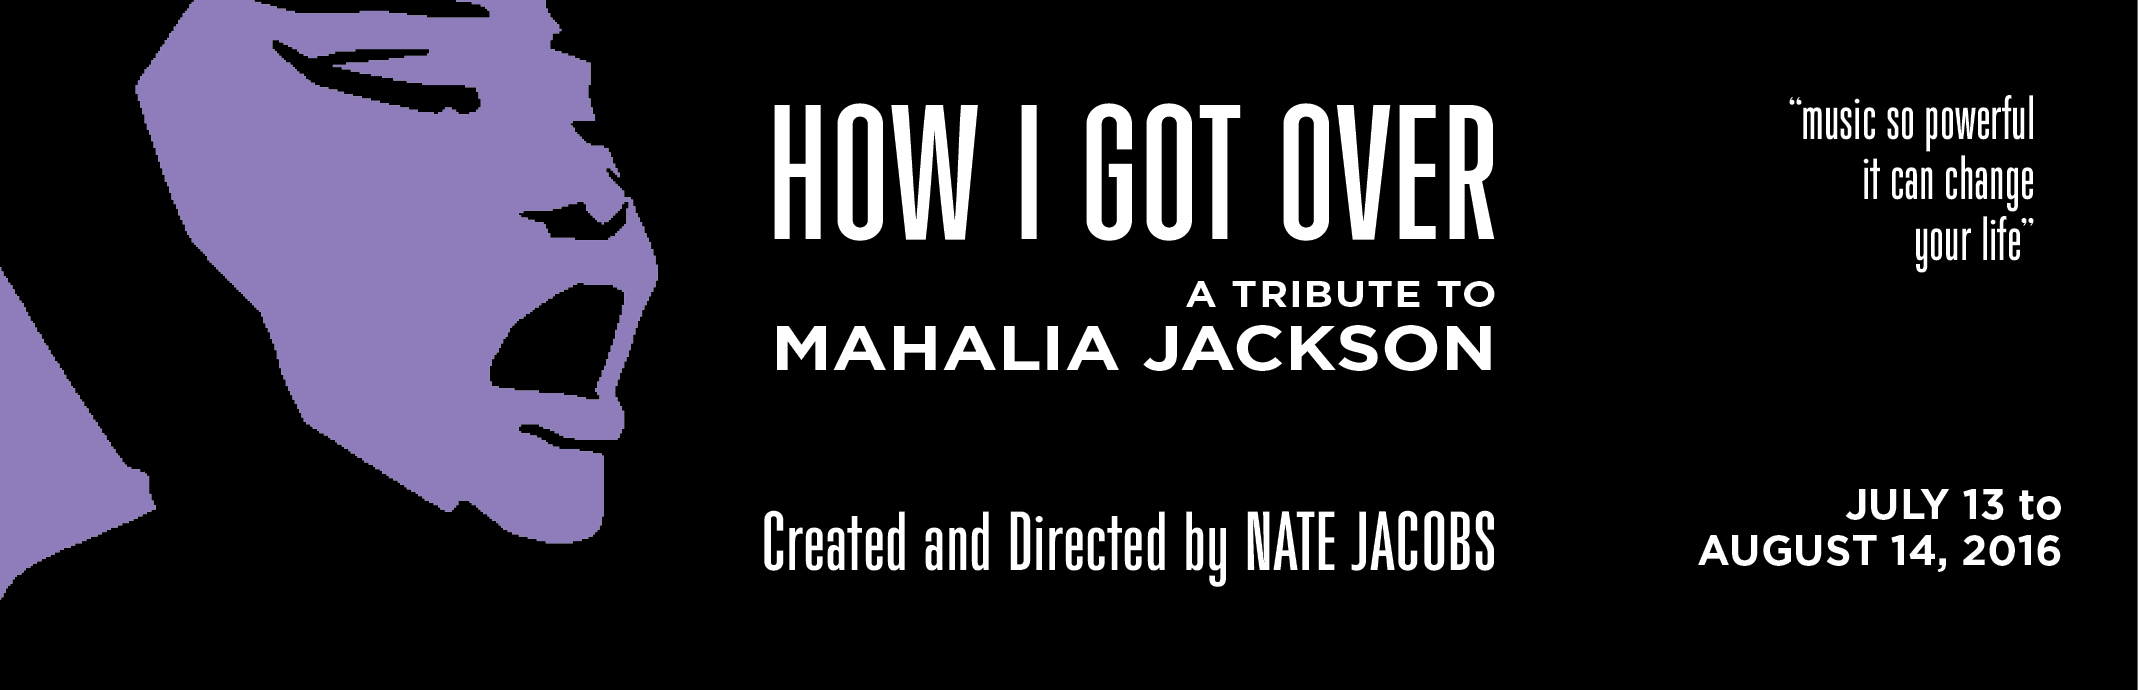 How I Got Over: A Tribute to Mahalia Jackson